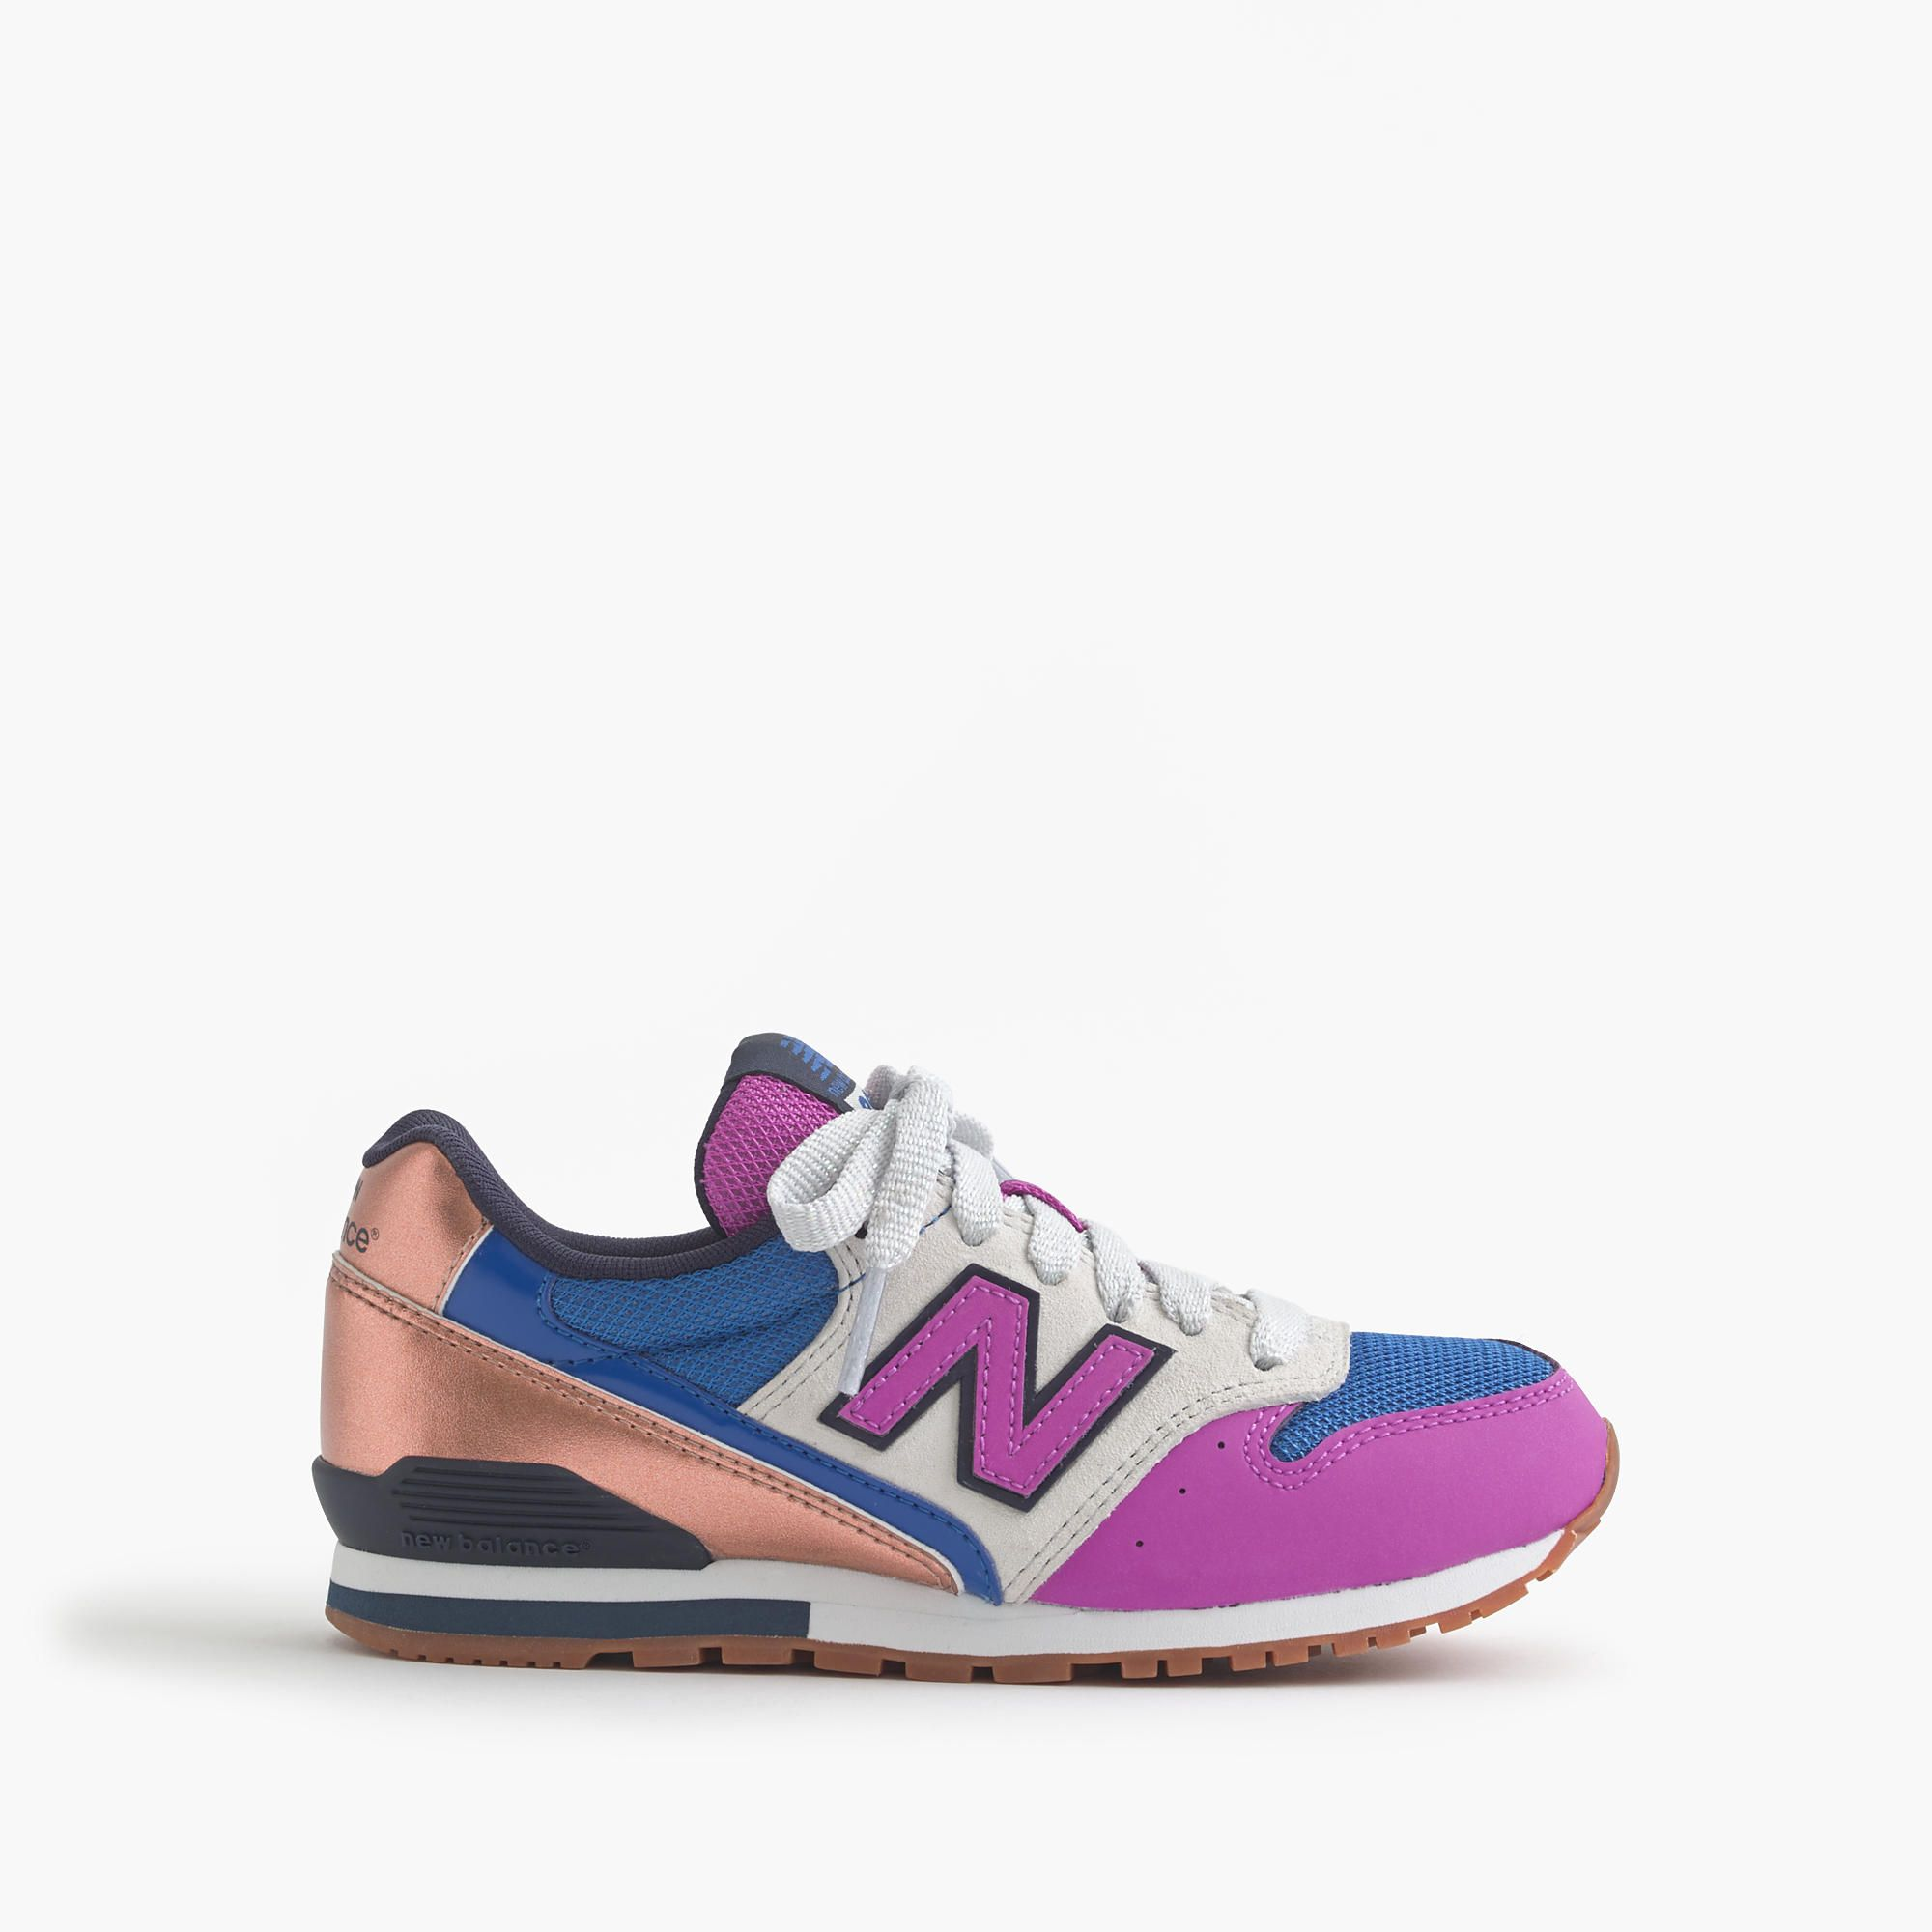 871736a3 Shop the Kids' New Balance For Crewcuts 996 Sneakers at ...